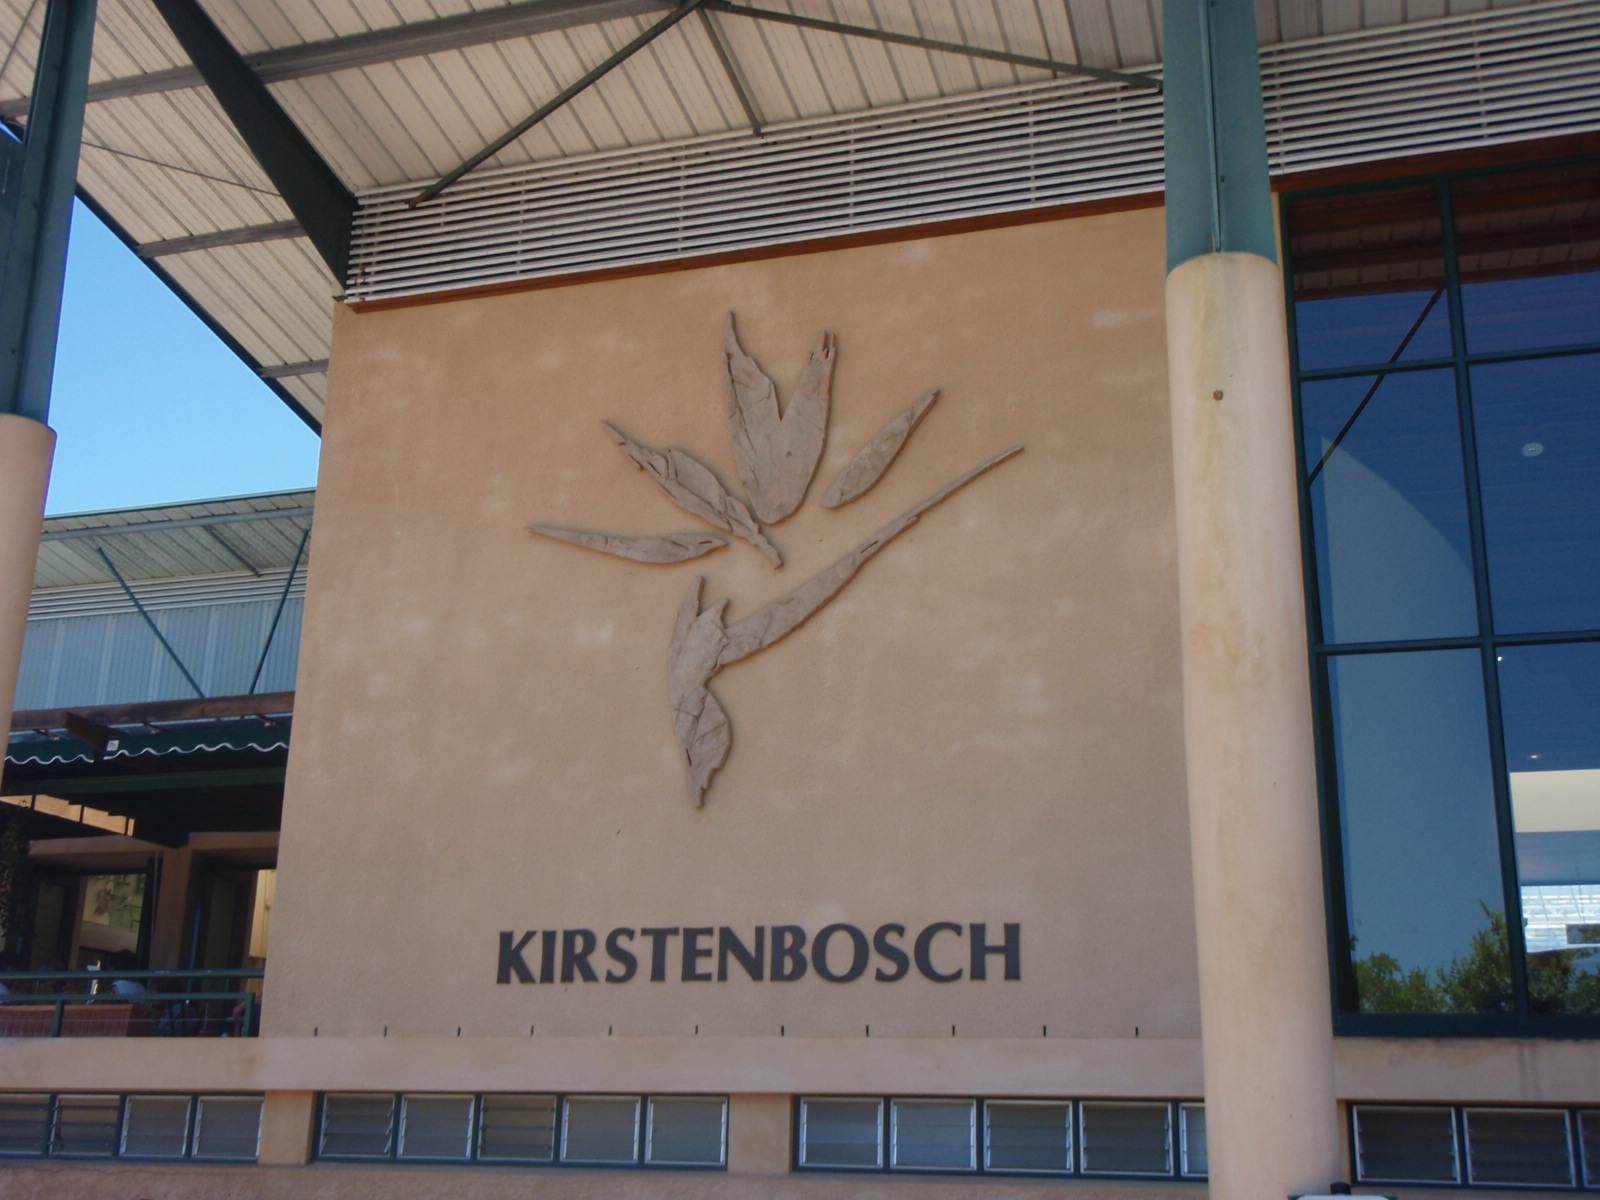 Impressive Botanical Garden, Kirstenbosch, Cape Town, South Africa, Entrance view